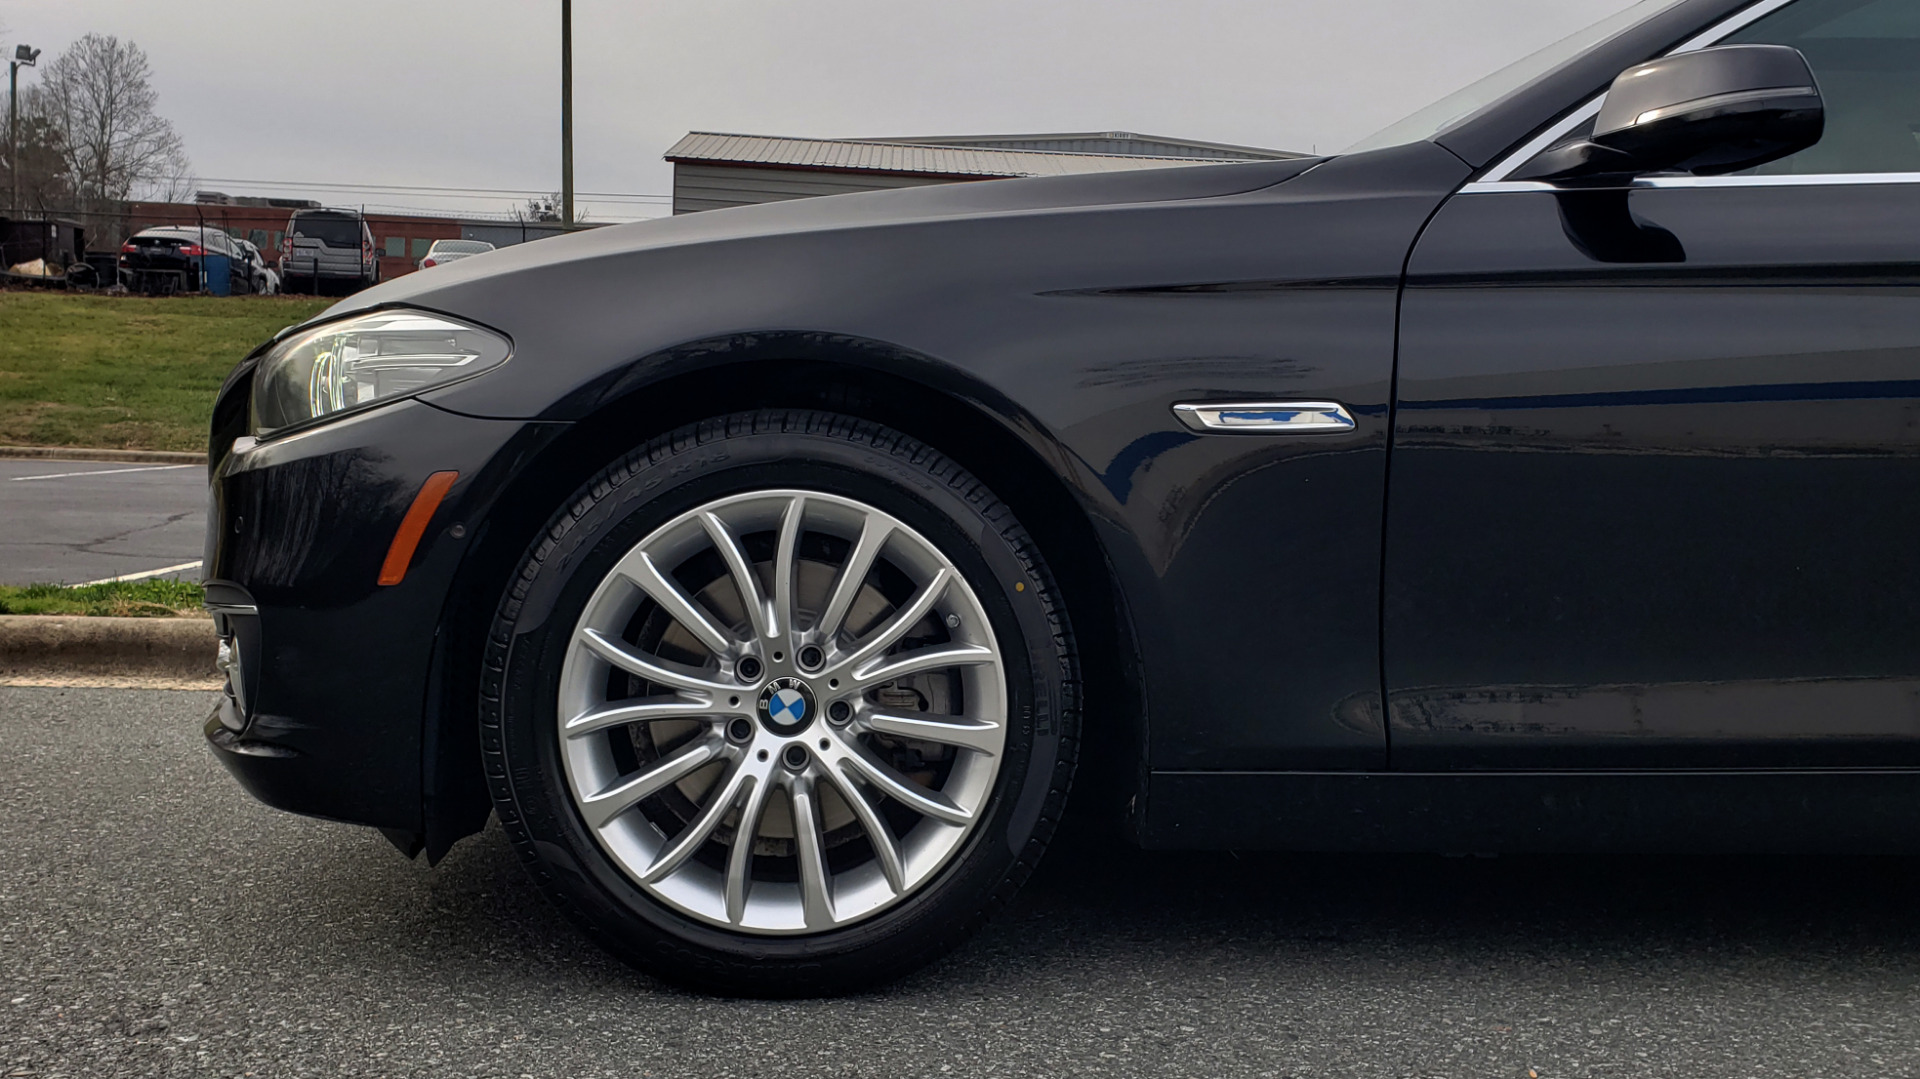 Used 2016 BMW 5 SERIES 528i XDRIVE / PREM PKG / DRVR ASST PLUS / LUXURY / COLD WTHR for sale Sold at Formula Imports in Charlotte NC 28227 6